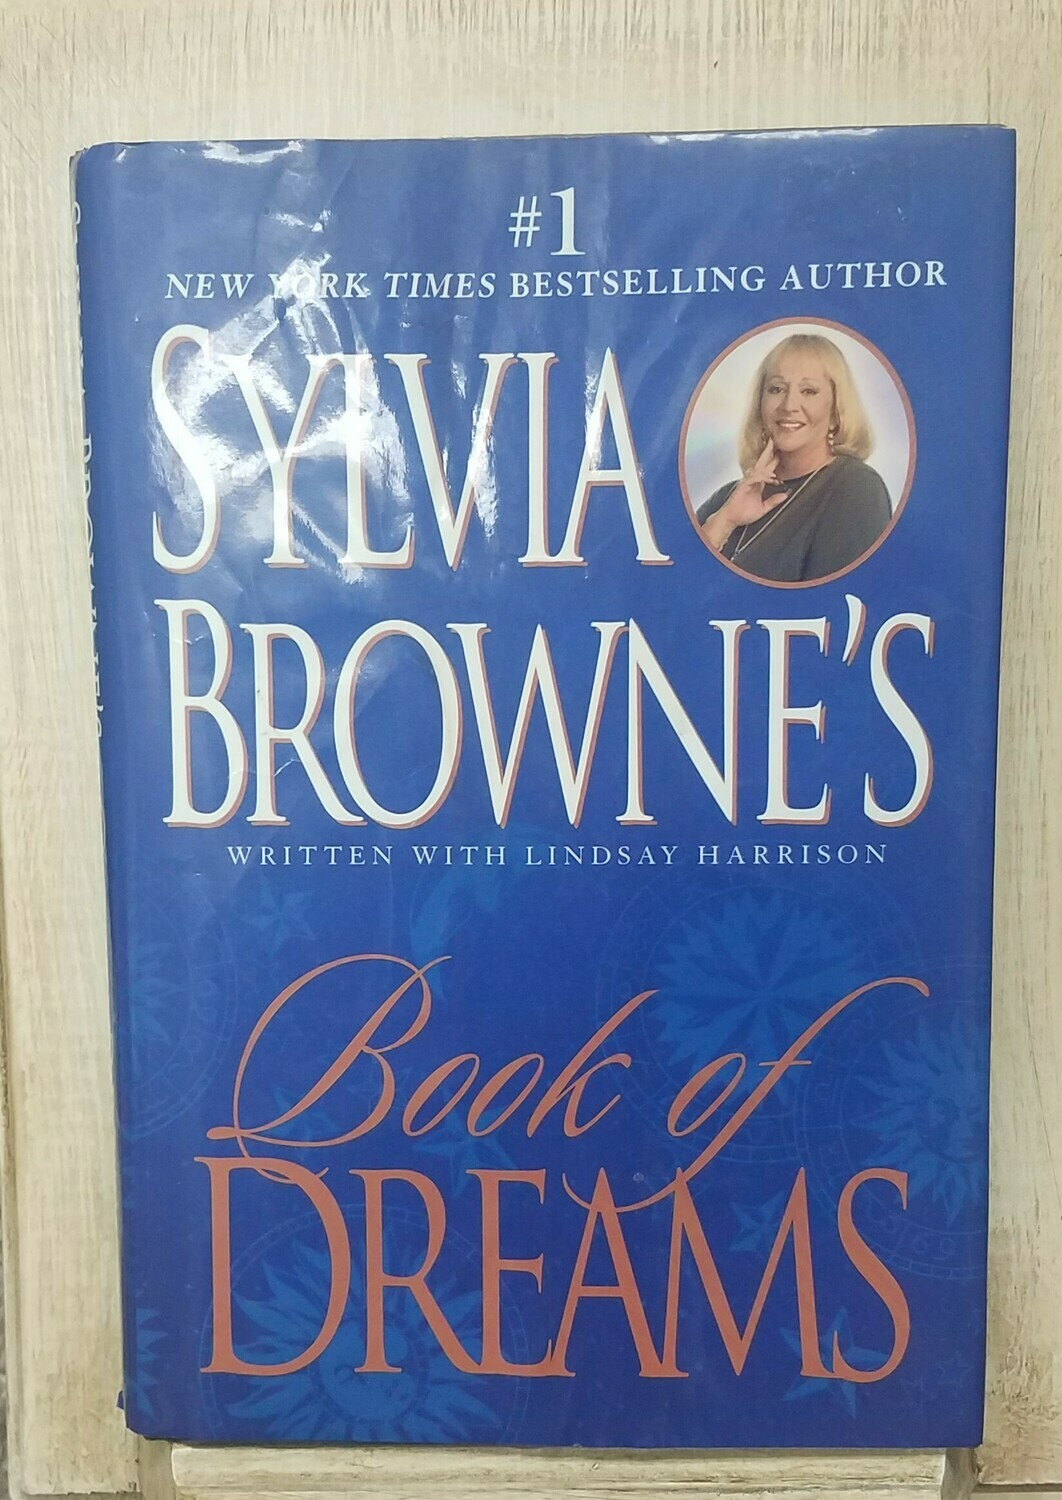 Book of Dreams by Sylvia Browne with Lindsay Harrison